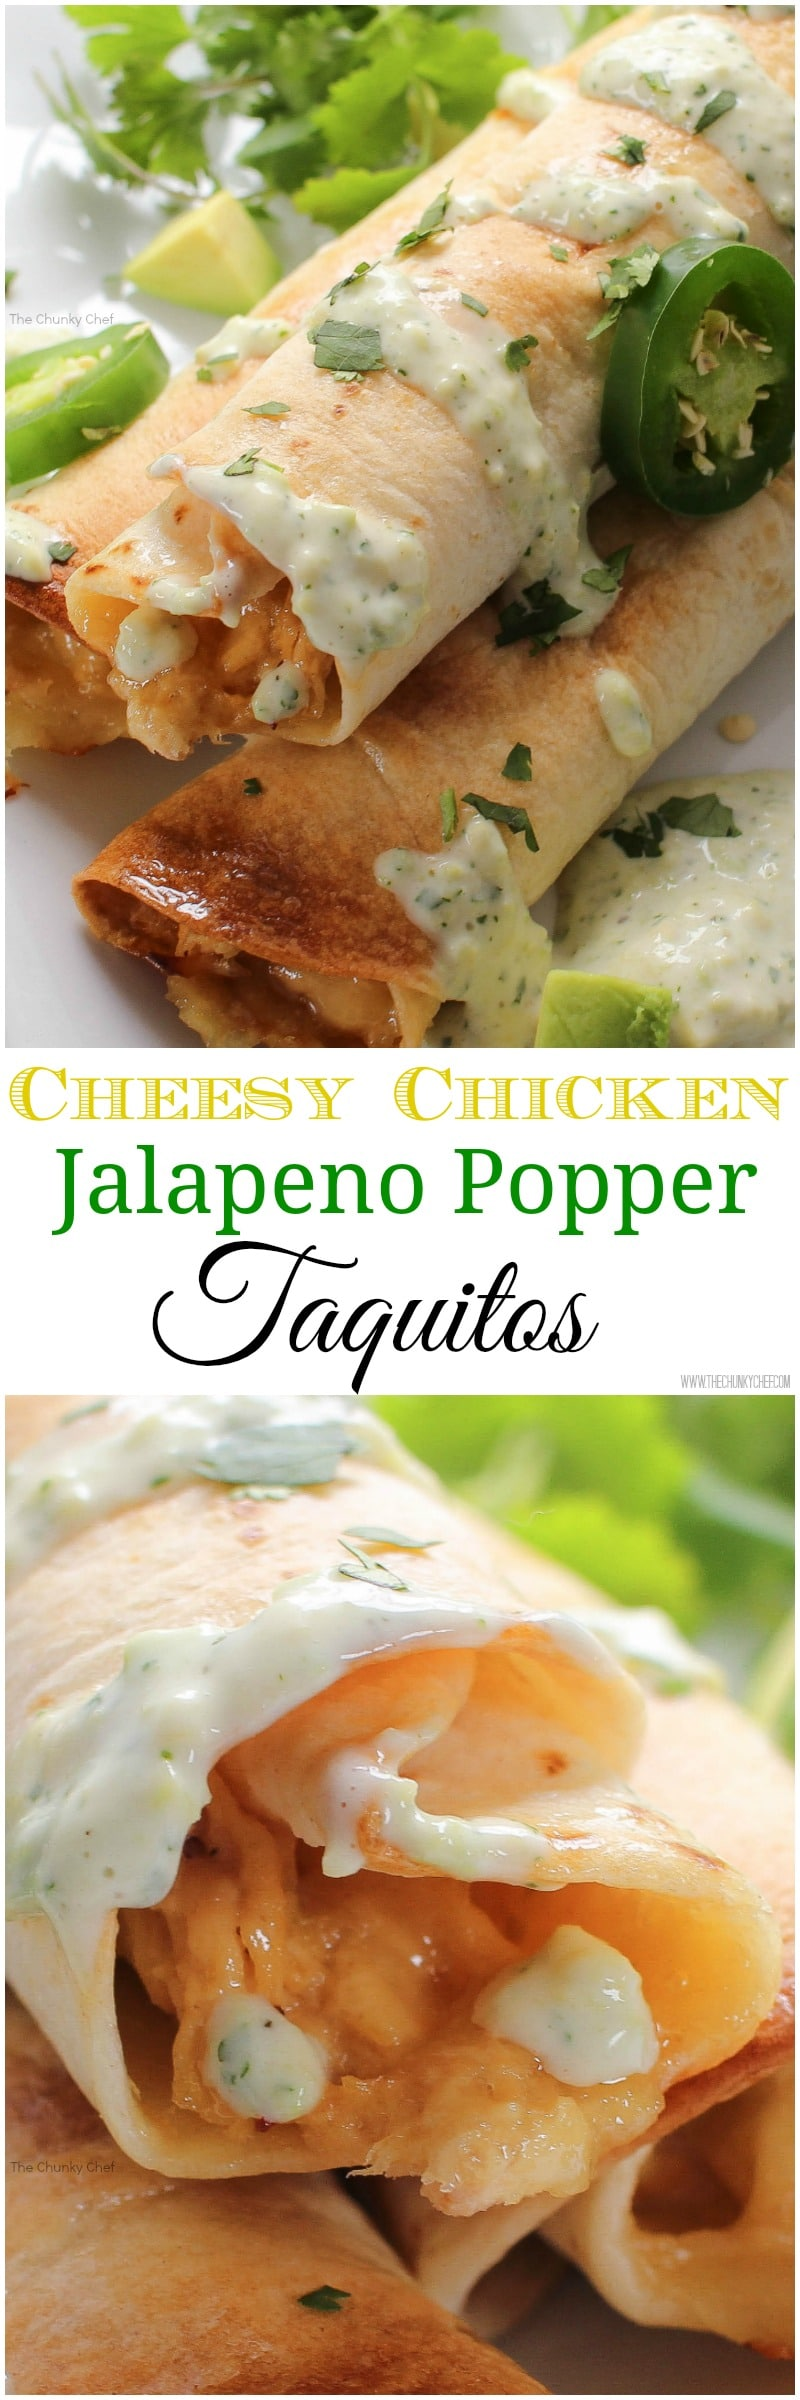 ... jalapeno popper mixed with chicken and rolled up into crispy baked